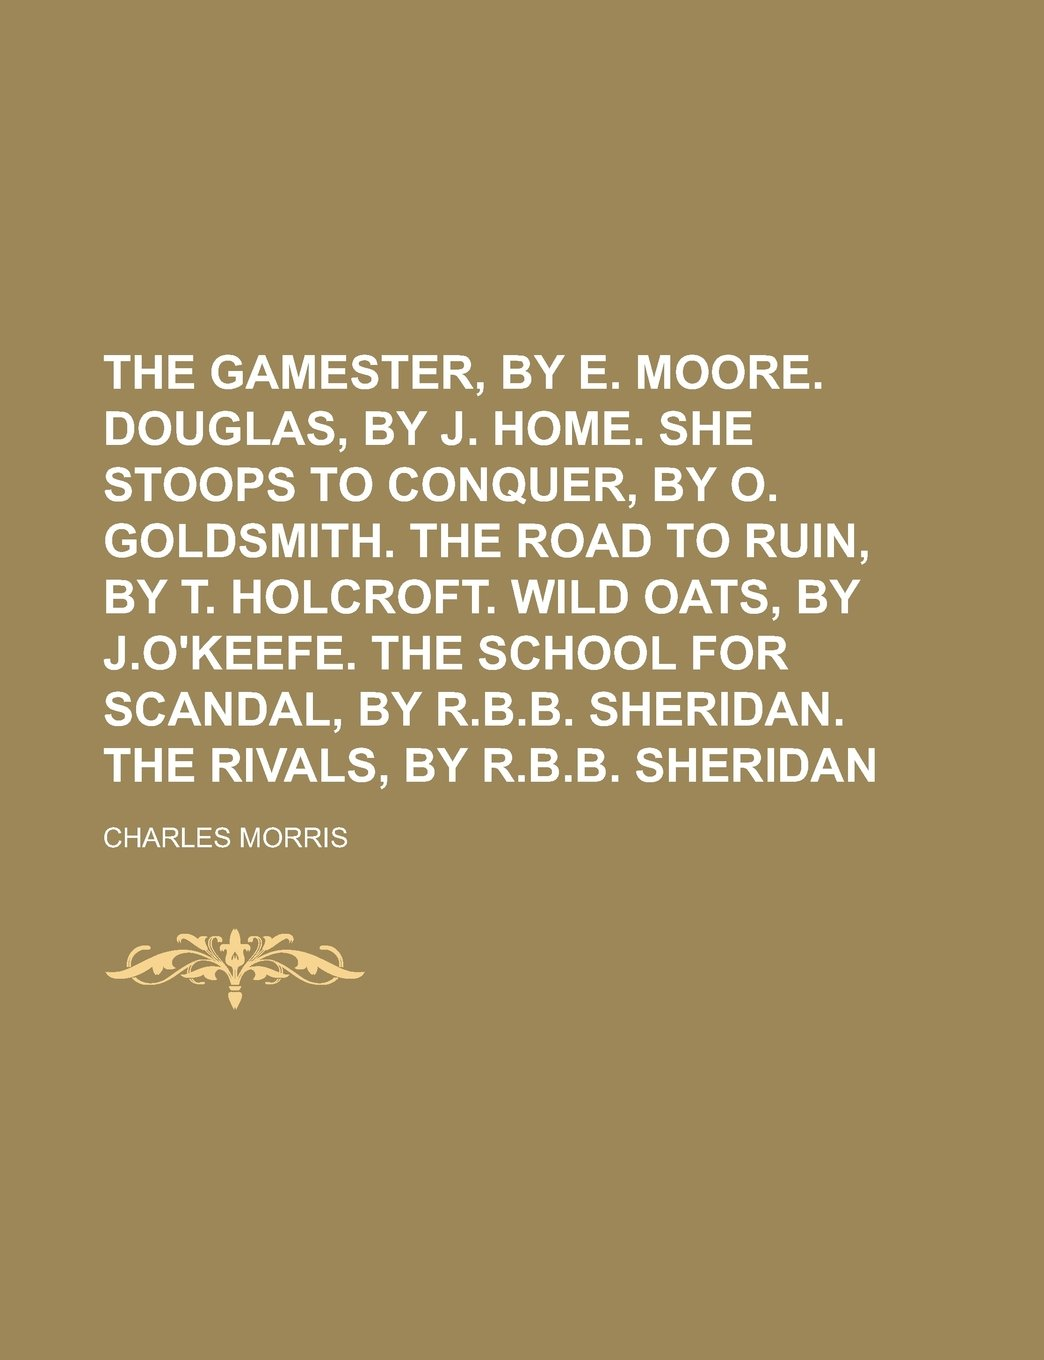 The gamester, by E. Moore. Douglas, by J. Home. She stoops to conquer, by  O. Goldsmith. The road to ruin, by T. Holcroft. Wild oats, by J.O'Keefe. The  .